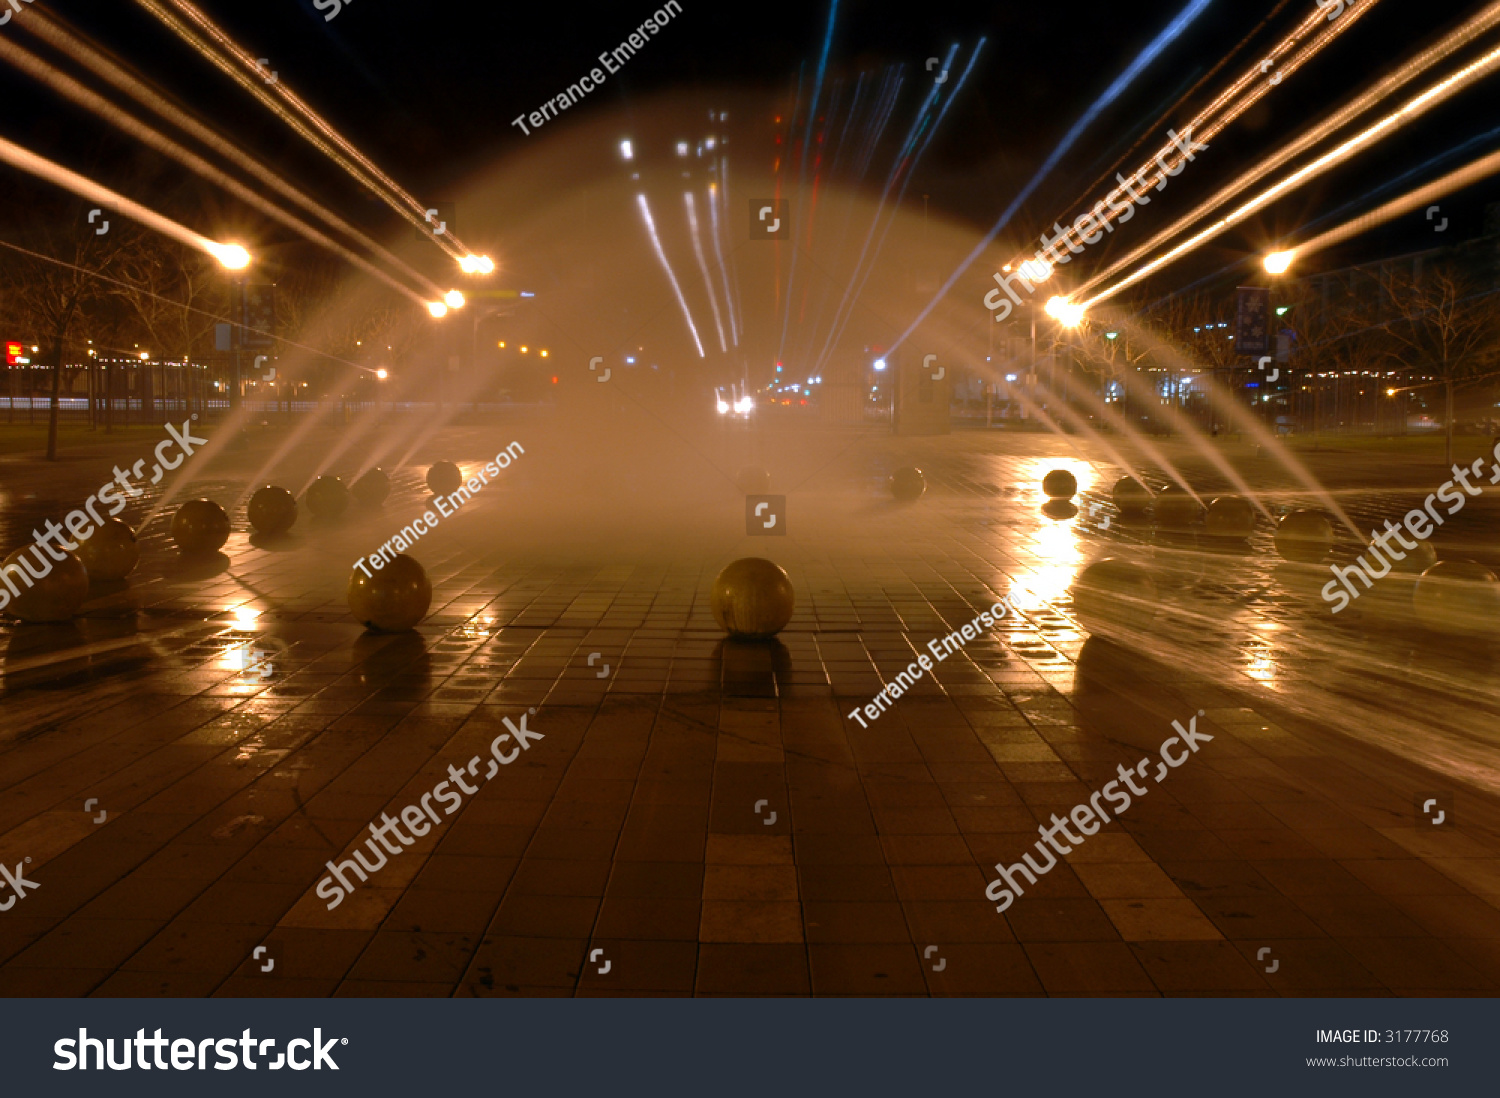 Radical Tunnel Effect With Light Streaks, Arcs Of Spouting ...